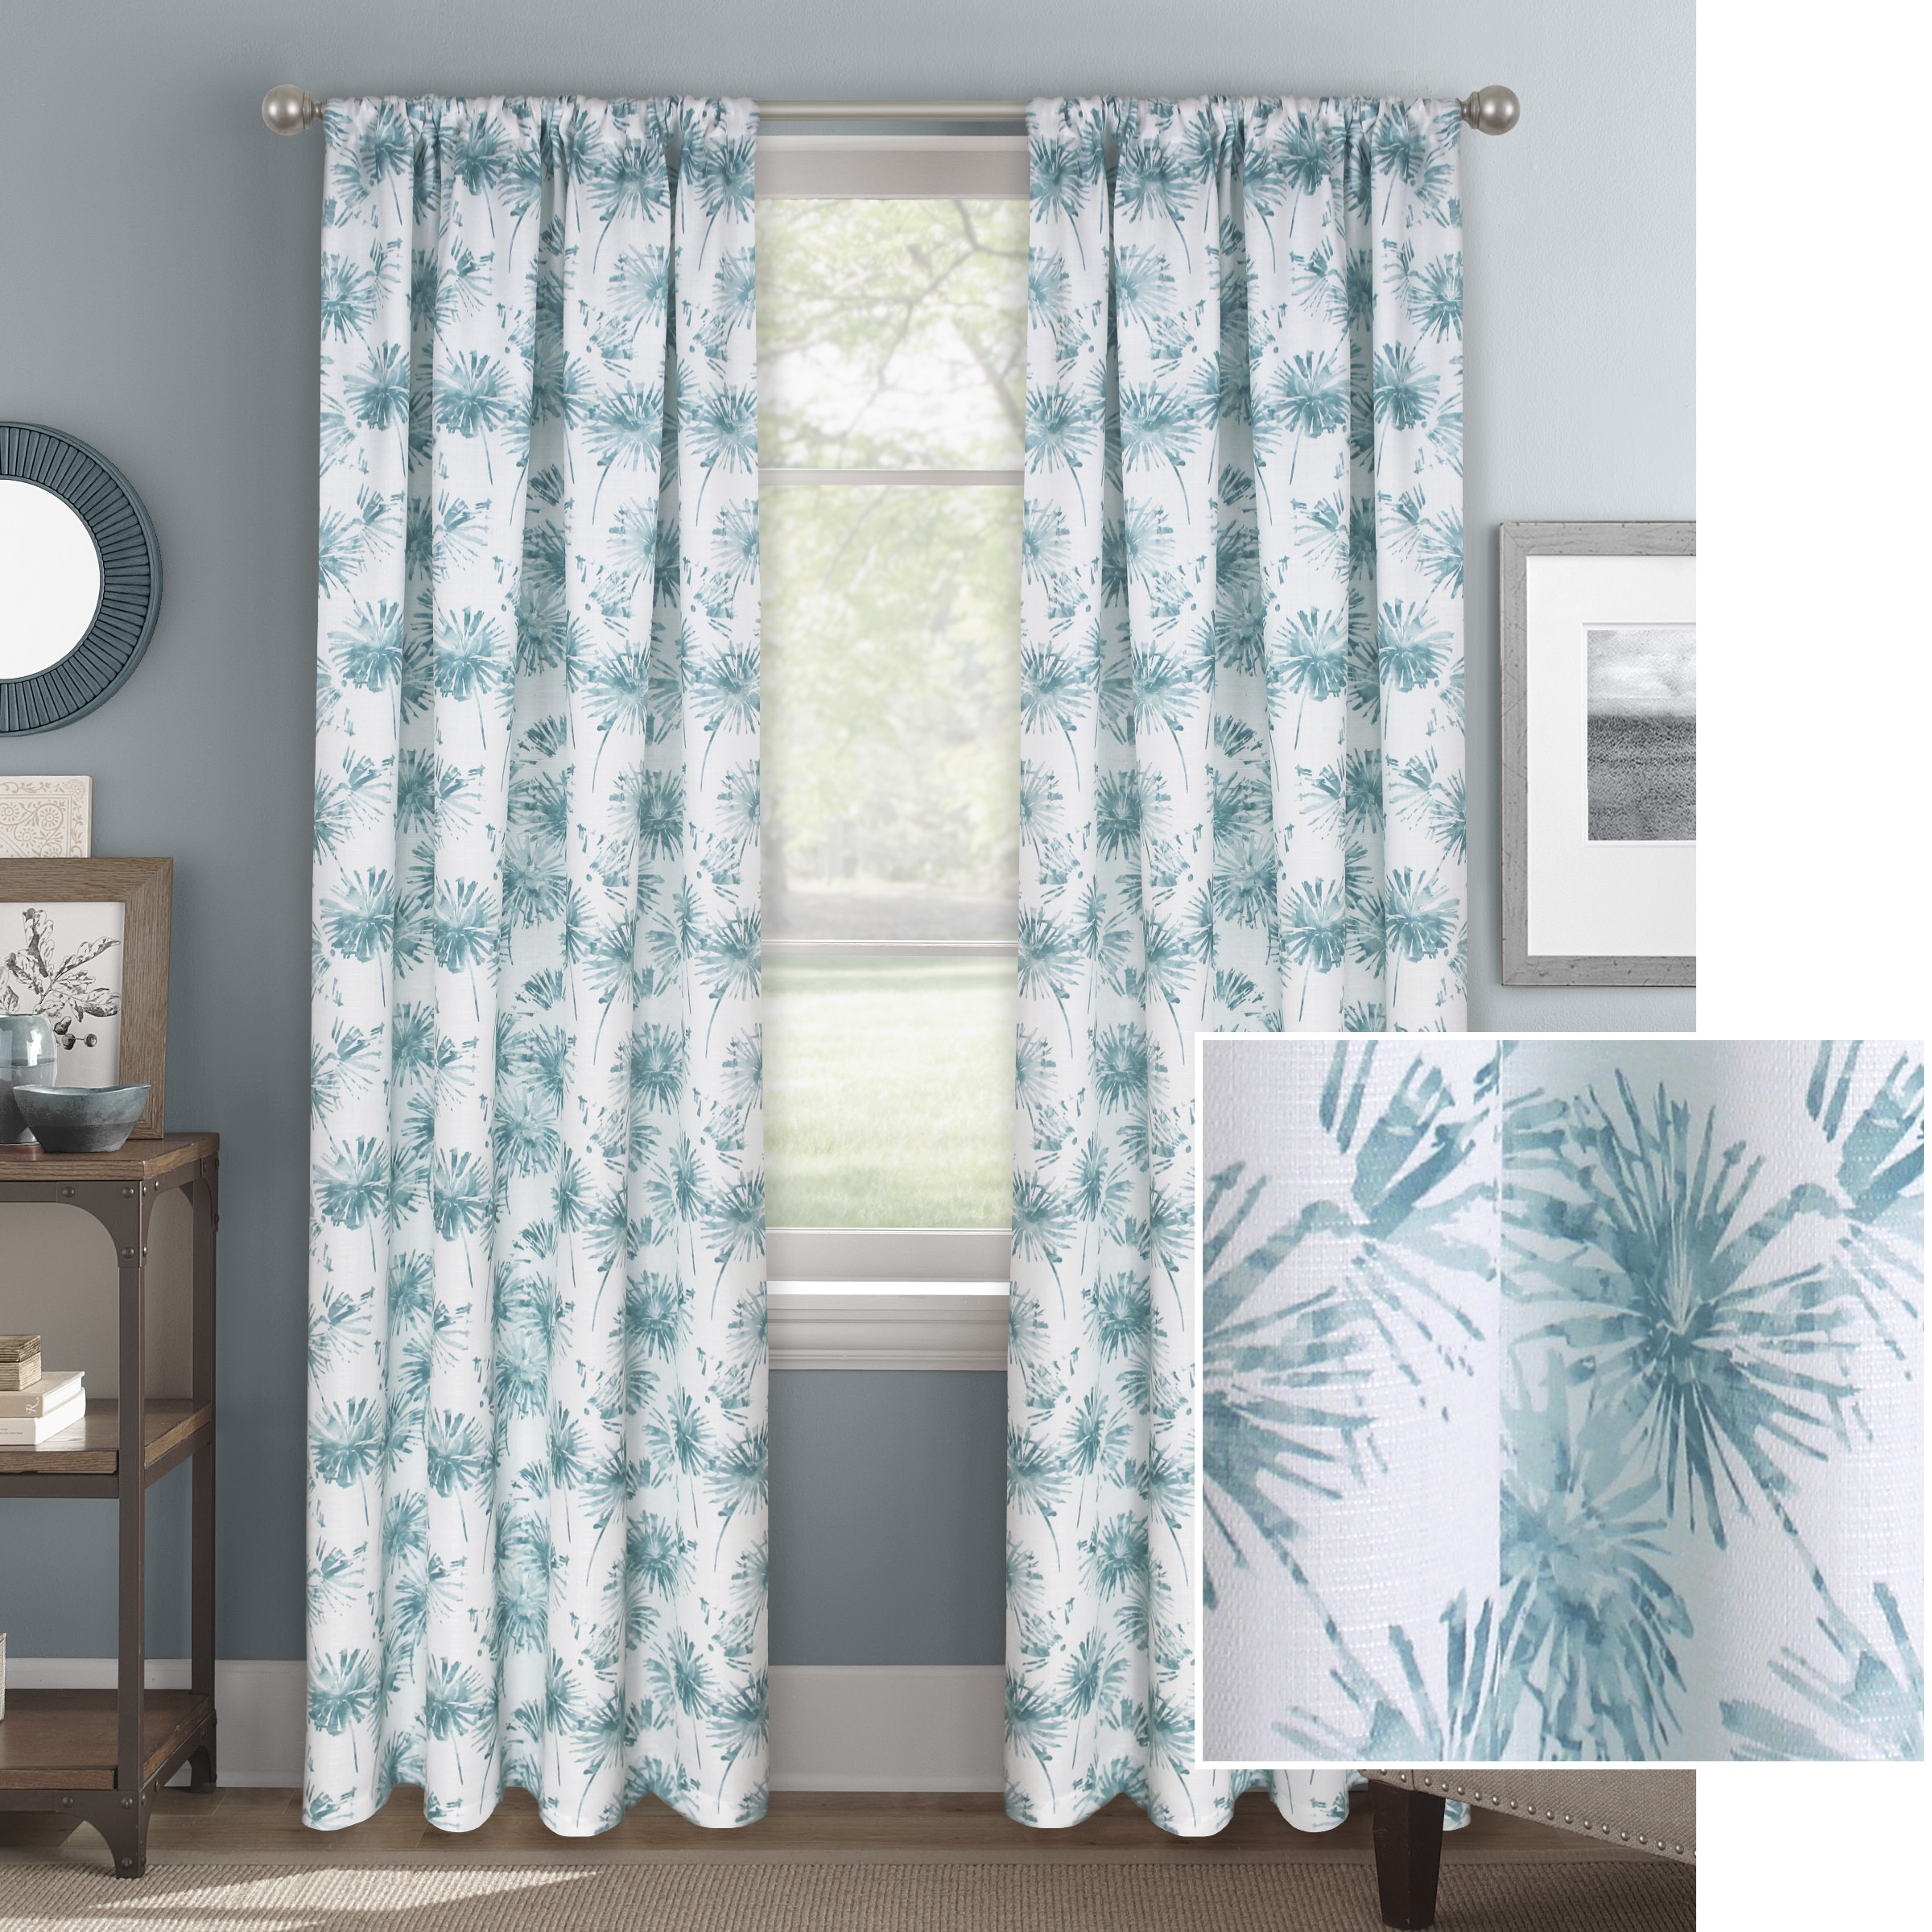 Better Homes & Gardens Dandelion Floral Window Curtain Panel